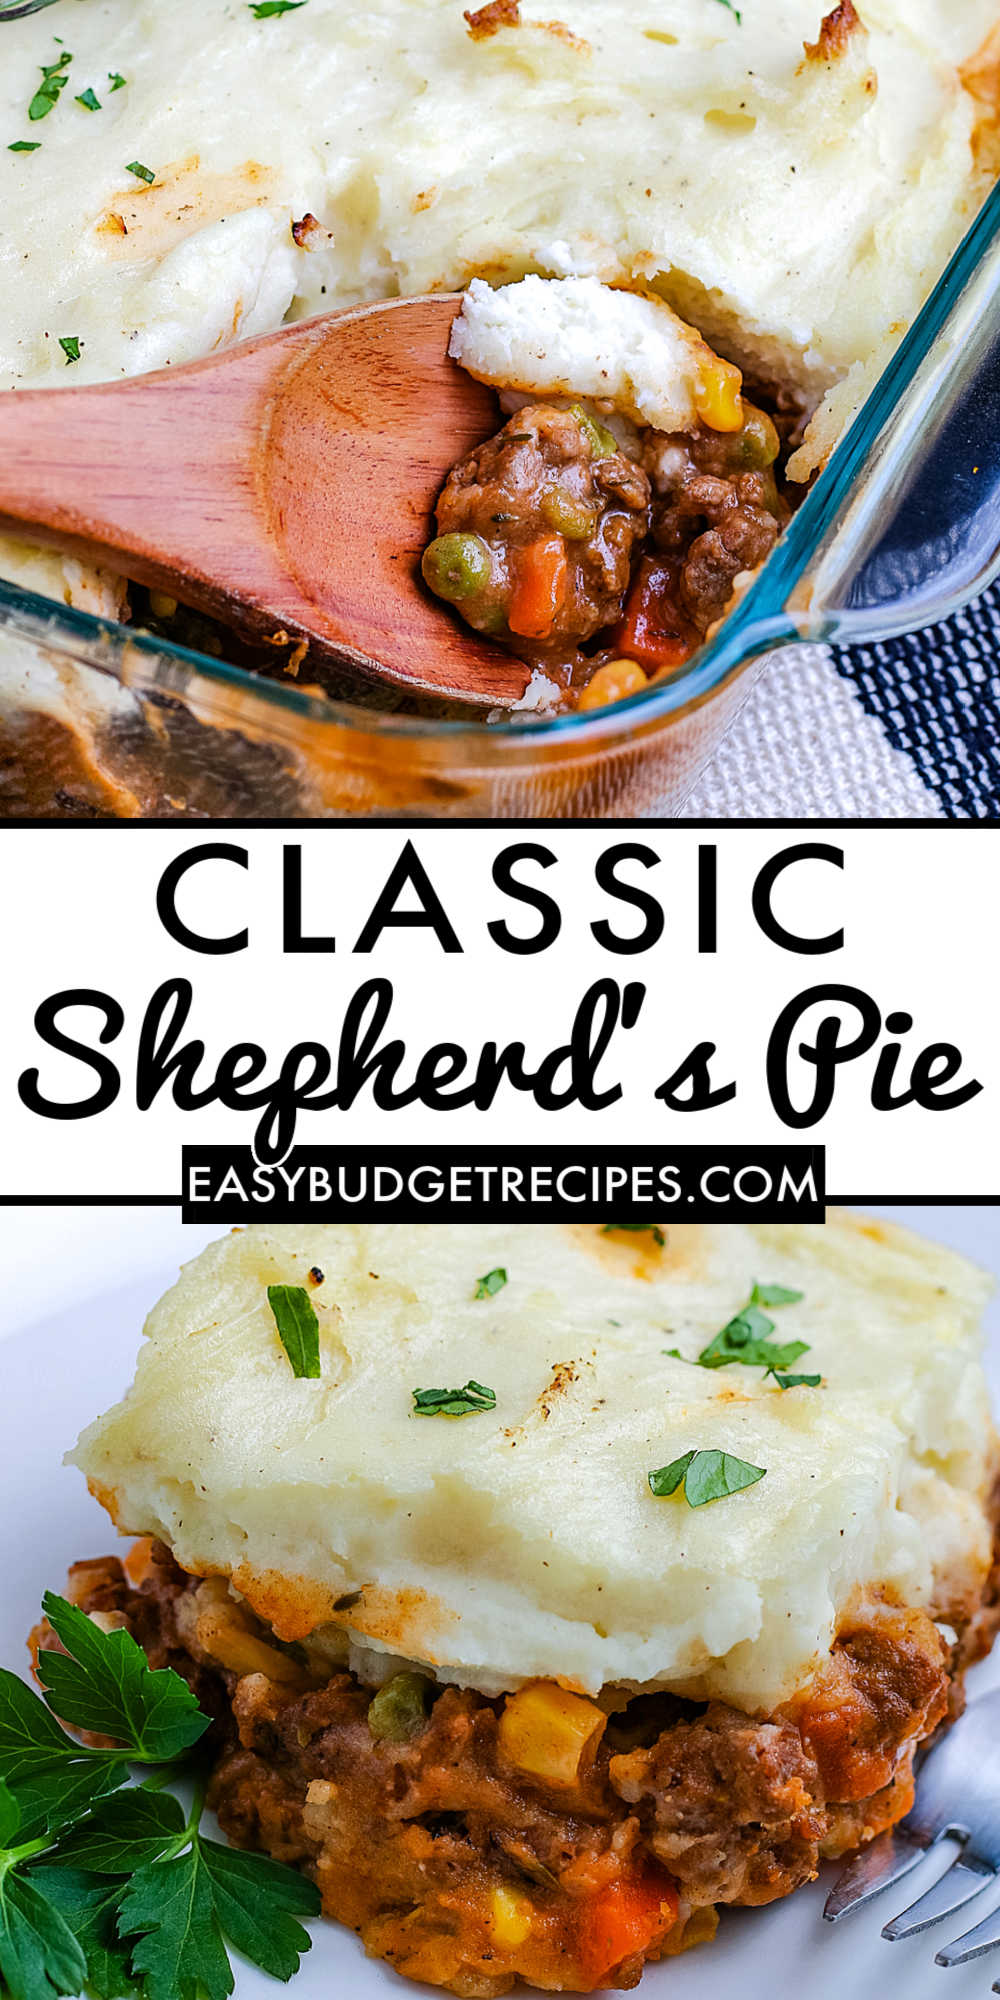 Our Shepherd's Pie recipe is some serious comfort food! It's made with ground beef, vegetables, a rich brown sauce, and mashed potatoes. via @easybudgetrecipes